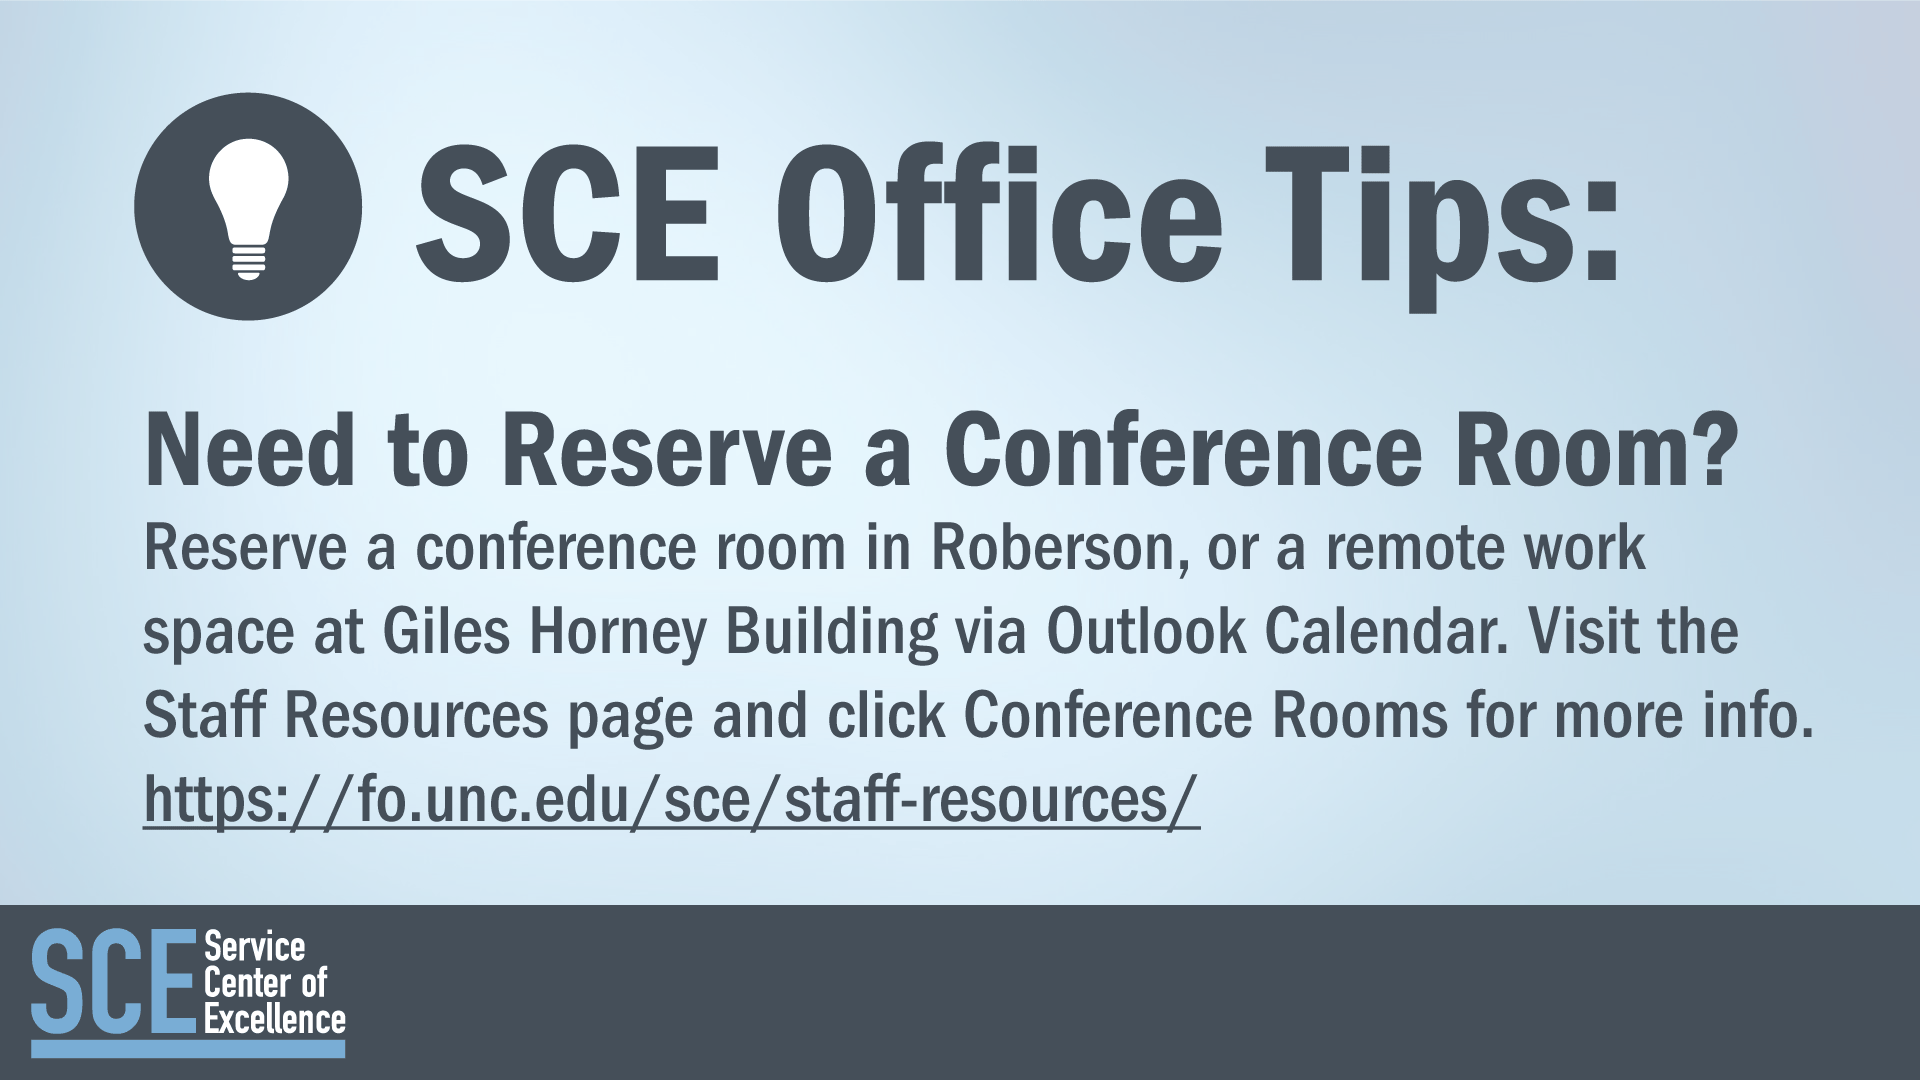 SCE Office Tips: Need to Reserve a Conference Room